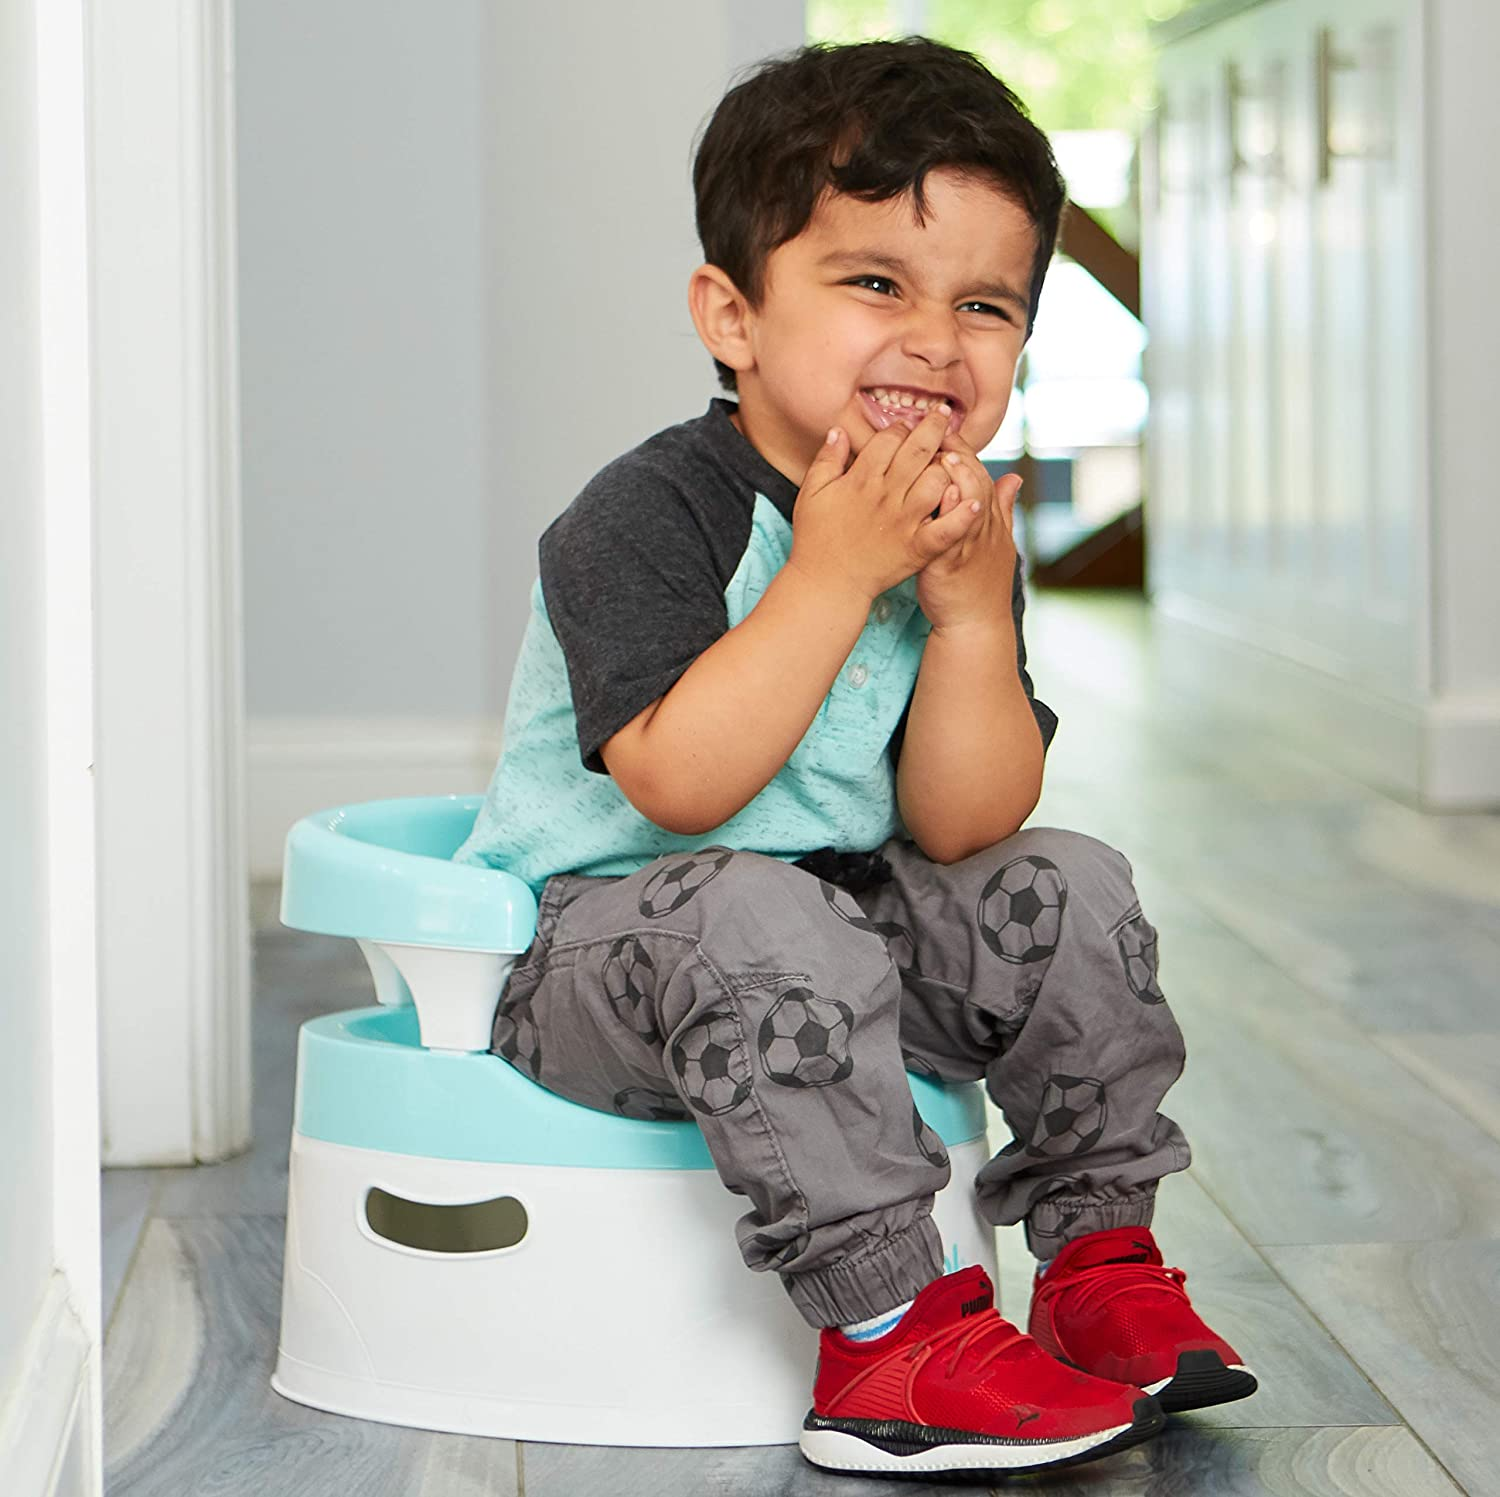 Handles /& Splash Guard Comfortable Seat for Toddler by Jool Baby Child Potty Training Chair for Boys and Girls